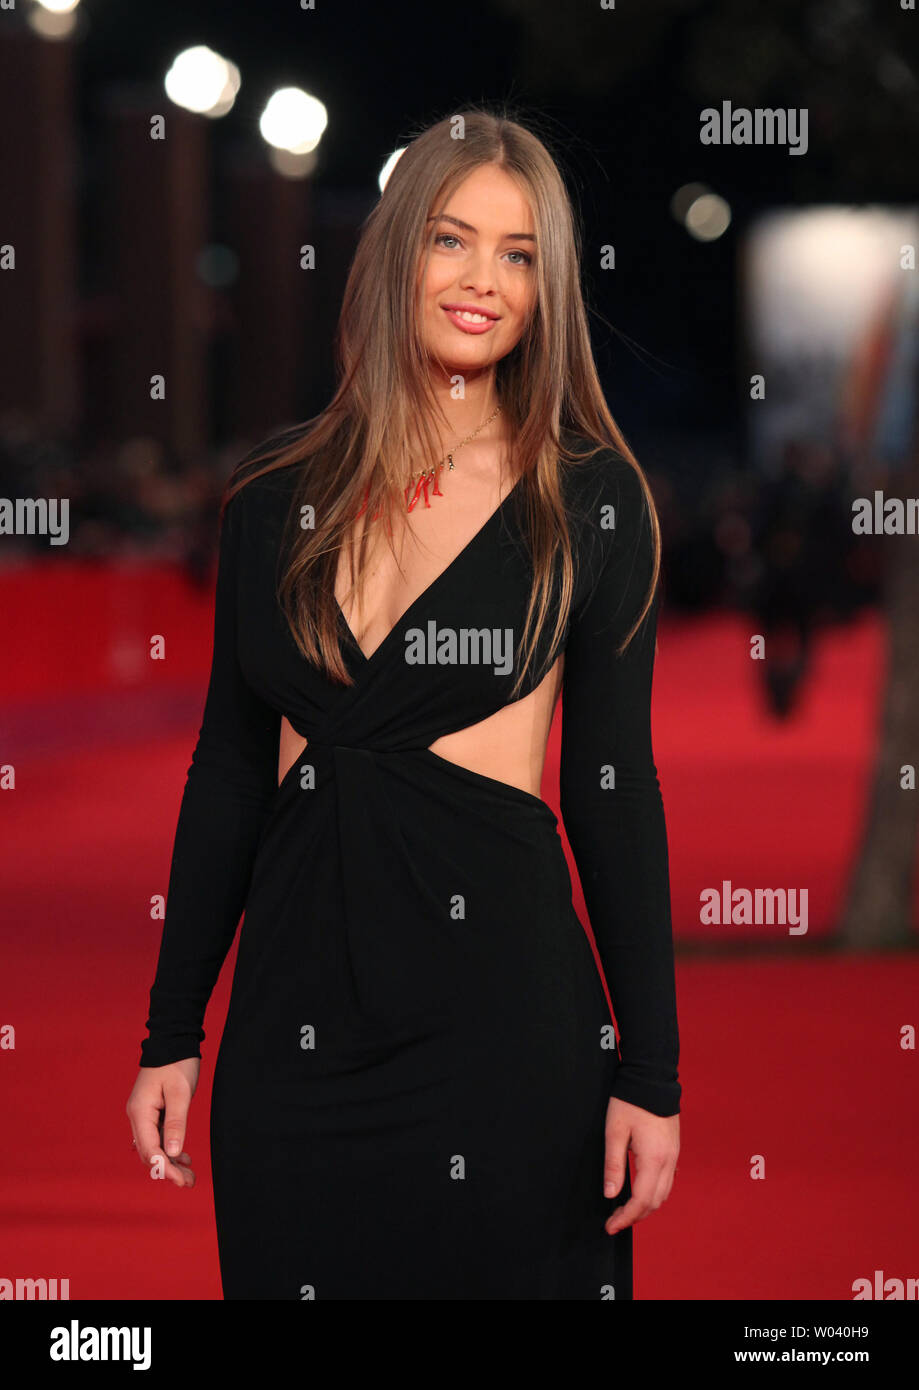 Marie-Ange Casta arrives on the red carpet before the screening of a digitally restored version of the 1960 classic film 'La Dolce Vita' during the 5th Rome International Film Festival in Rome on October 30, 2010.   UPI/David Silpa - Stock Image